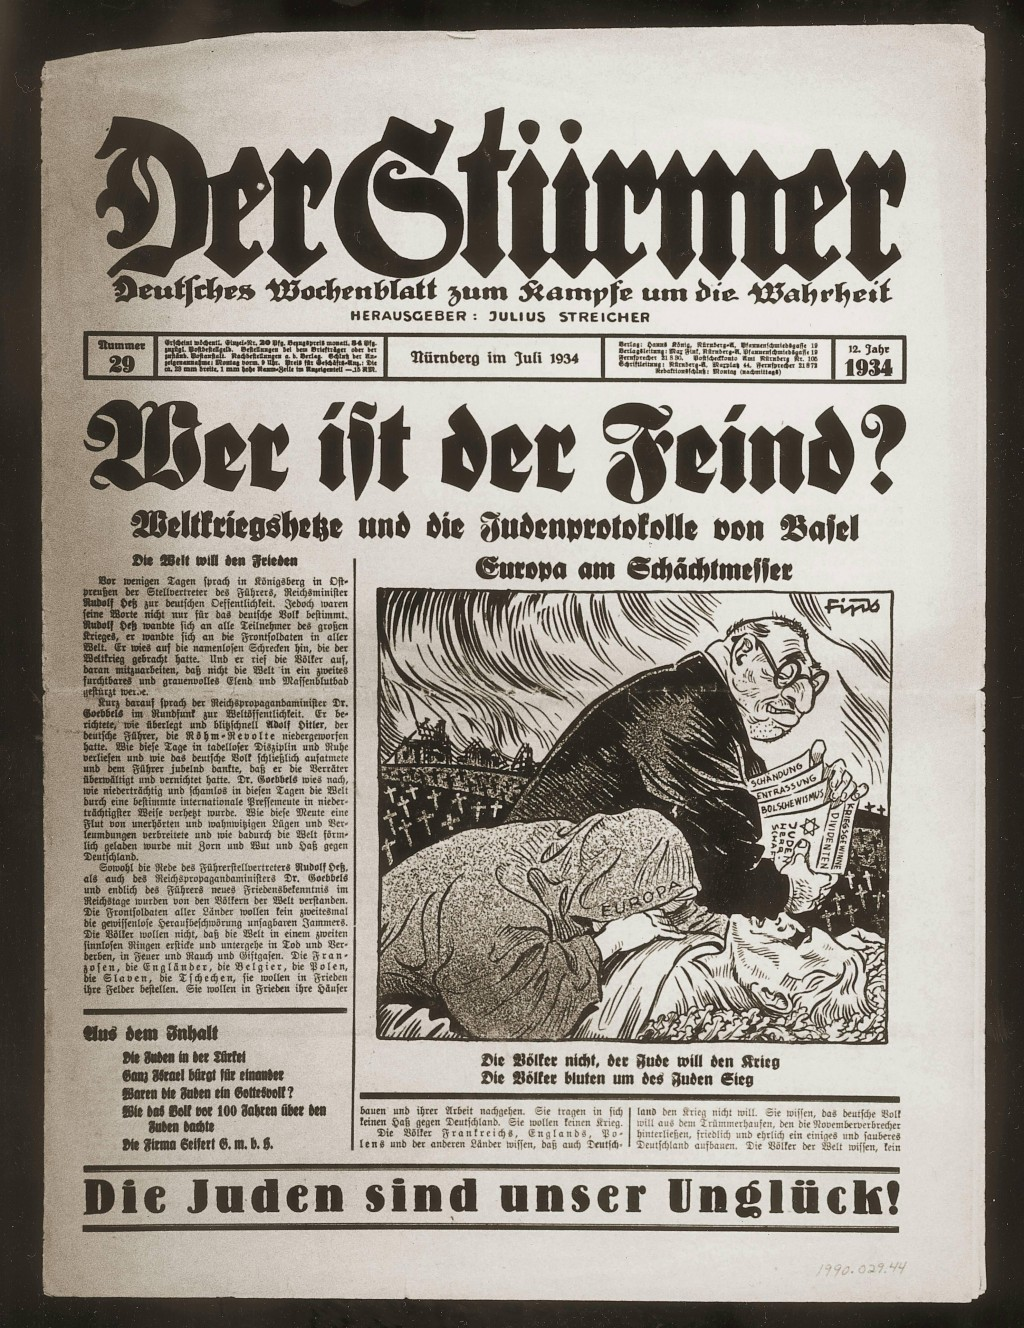 "<p>Nazi Germany's semi-official and fiercely antisemitic newspaper <em>Der Stuermer</em> warned of a Jewish program for world domination in this 1934 issue. The article, titled ""Who is the Enemy?"" blamed Jews for destroying social order and claimed that Jews wanted war, while the rest of the world wanted peace. Der Stuermer, July 1934.</p>"